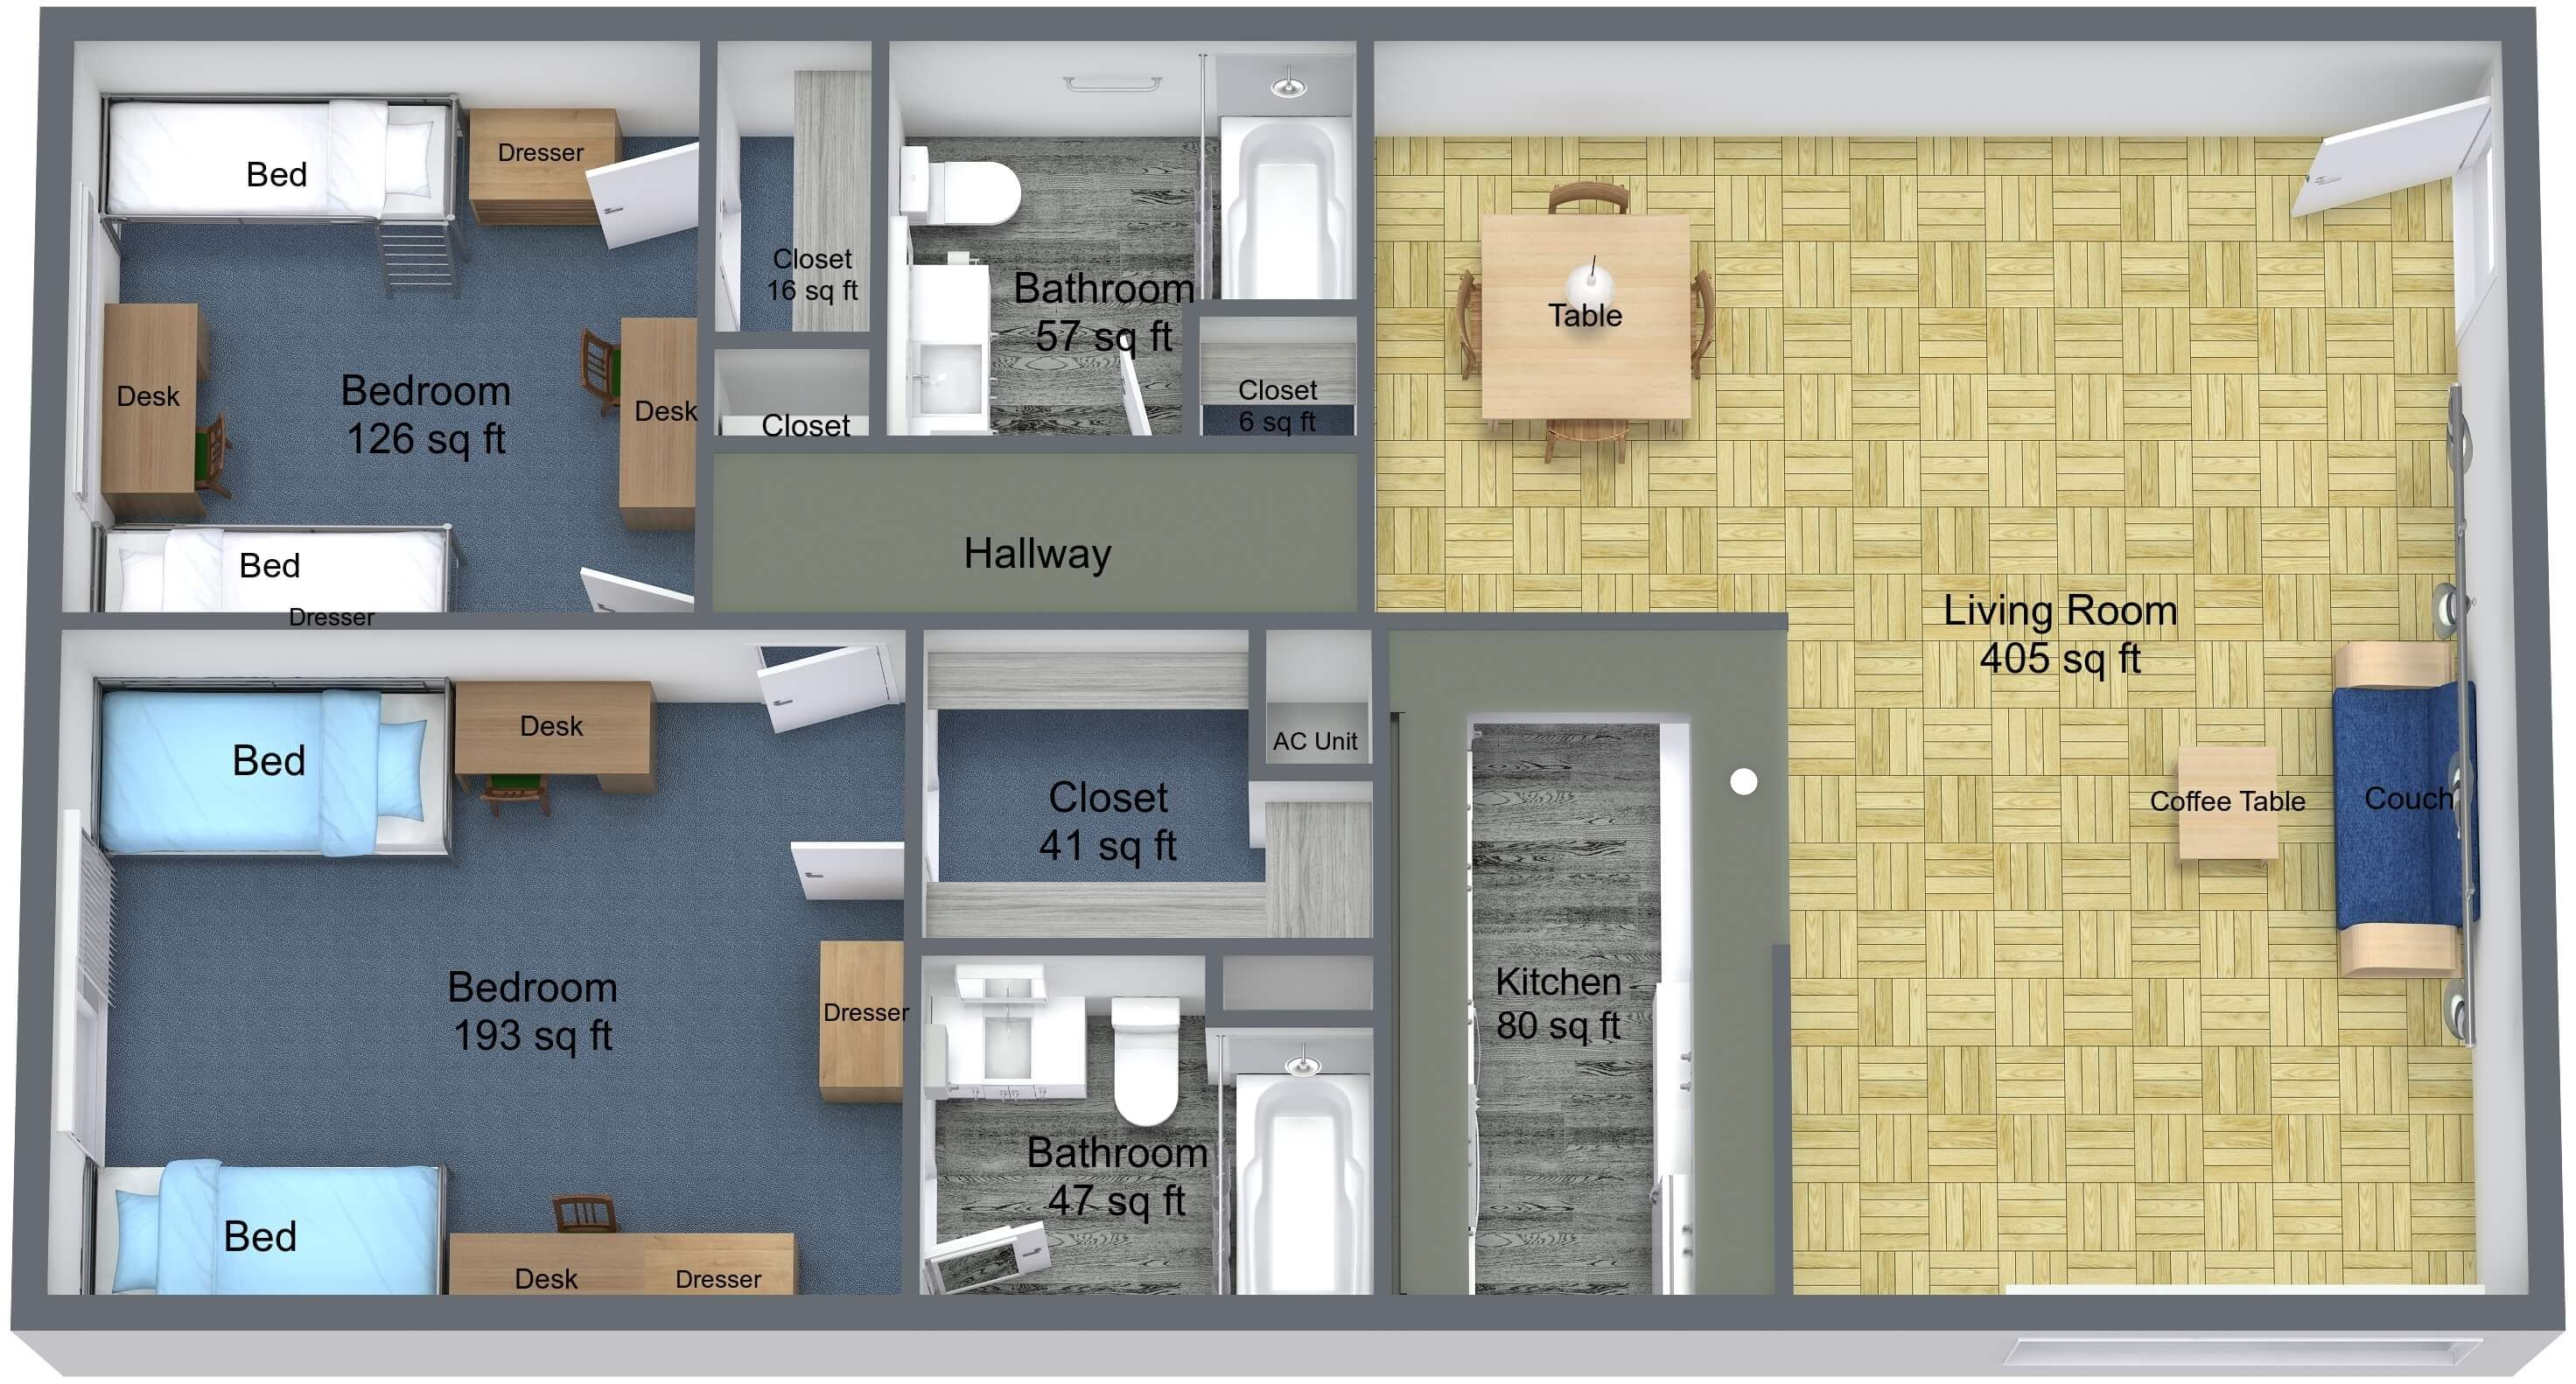 2 BR floor plan rendering for Young Hall dorm on campus of University of St. Thomas in Houston, Texas